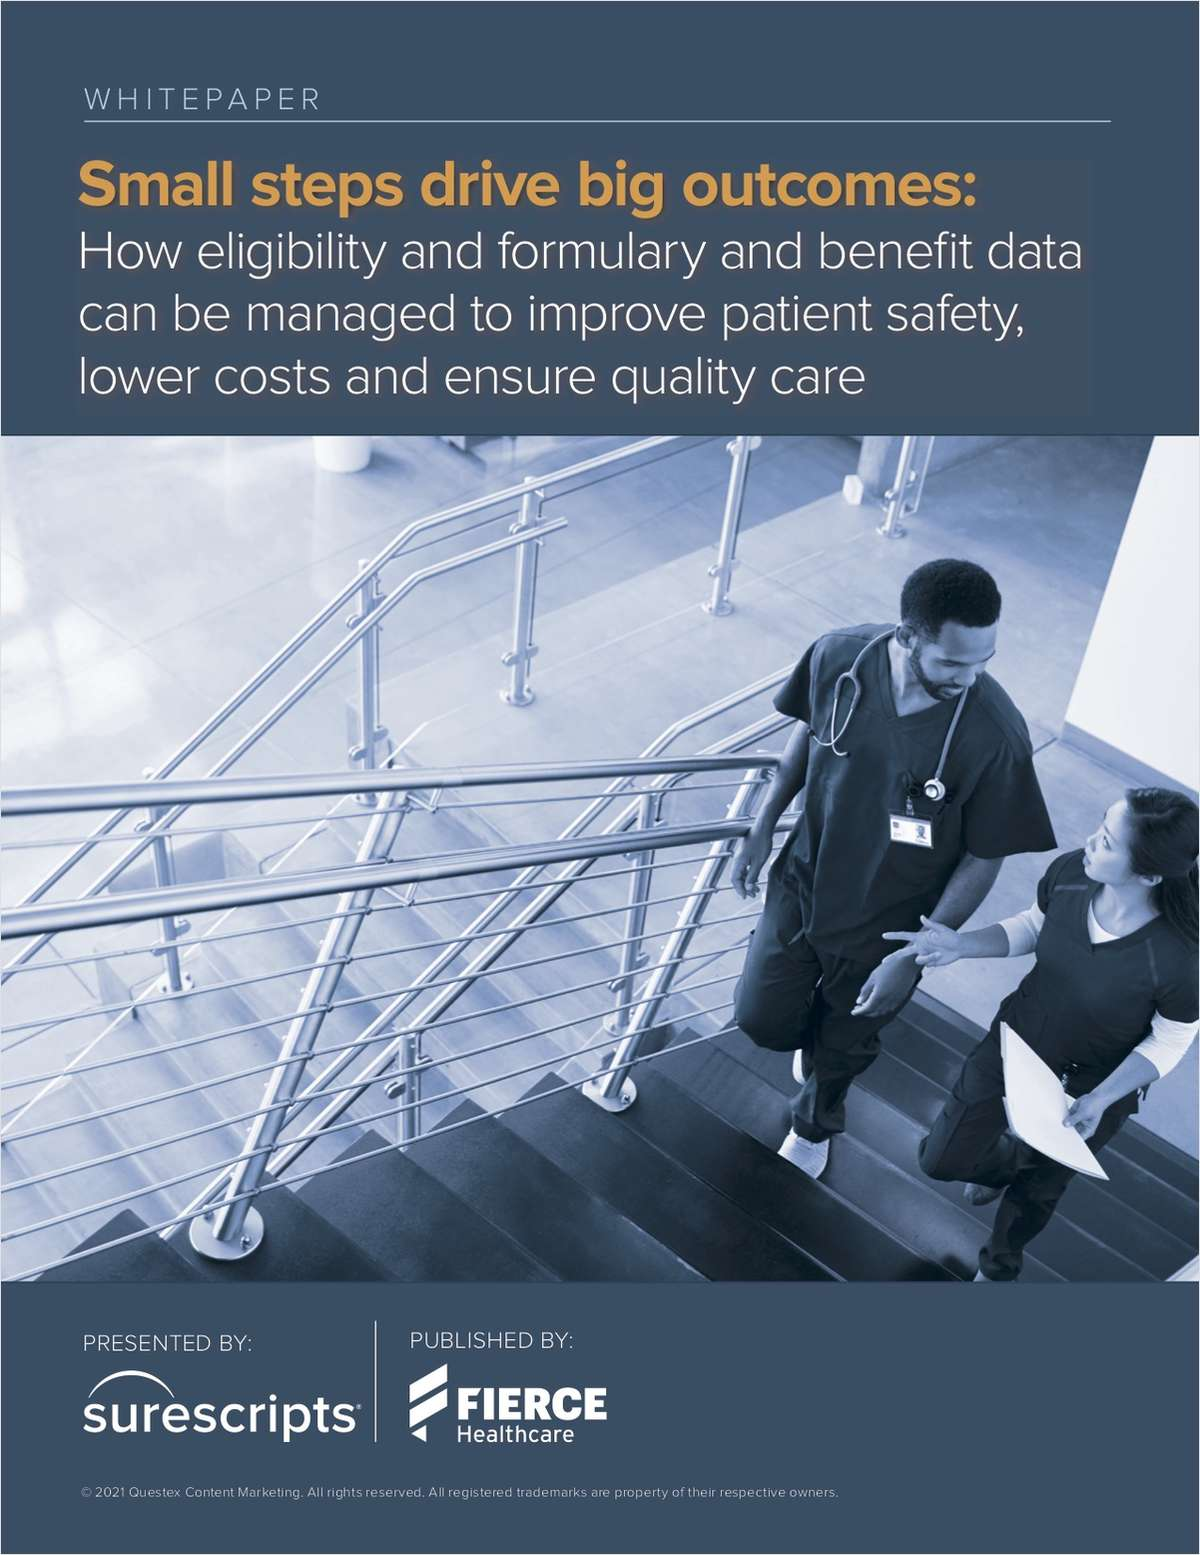 Small steps drive big outcomes: How eligibility and formulary and benefit data can be managed to improve patient safety, lower costs and ensure quality care